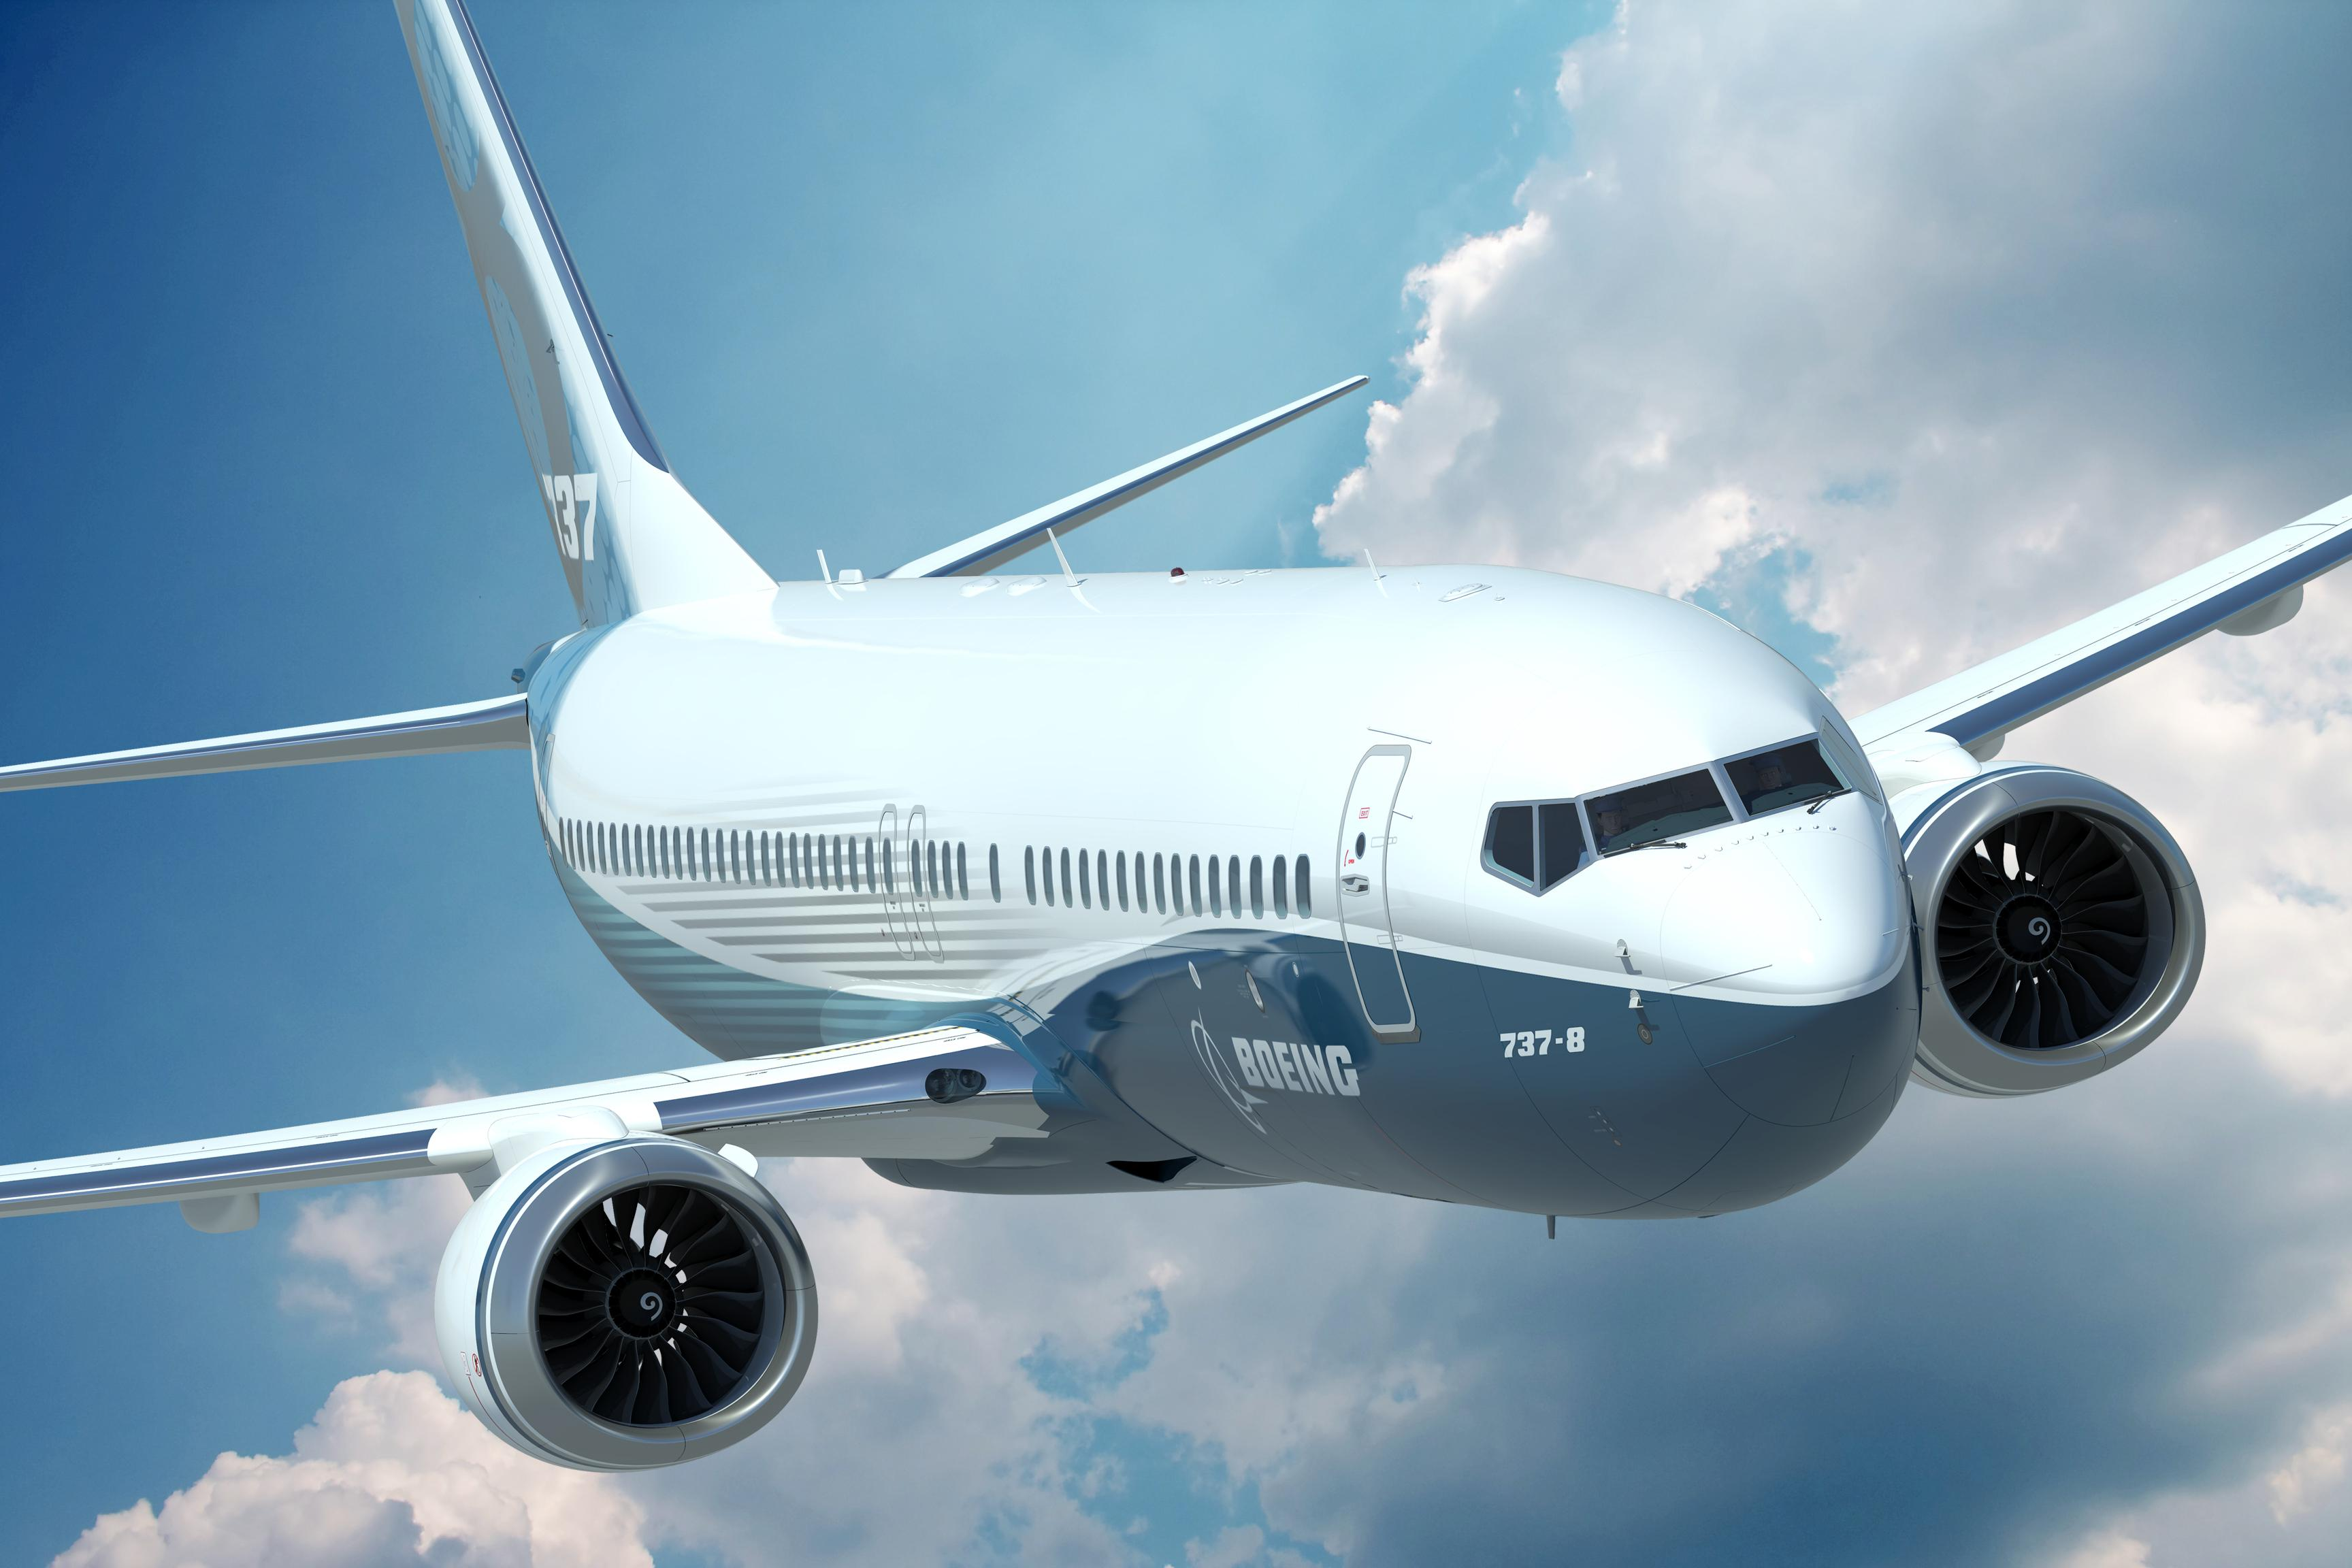 Trouble Ahead For Boeing? - The Boeing Company (NYSE:BA) | Seeking ...